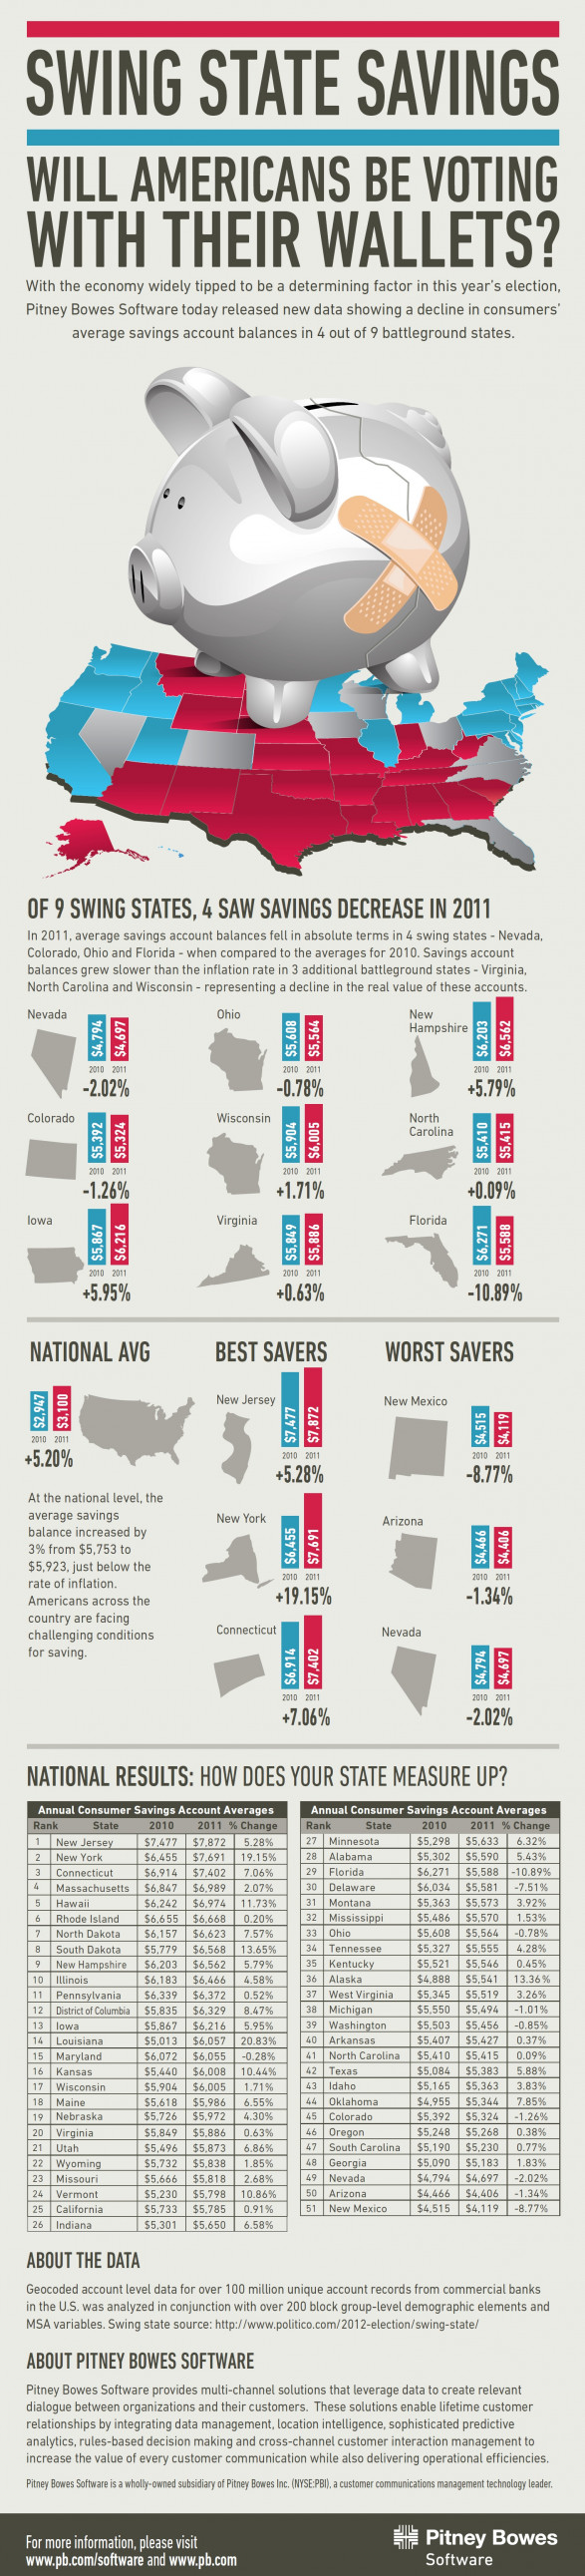 Swing State Savings